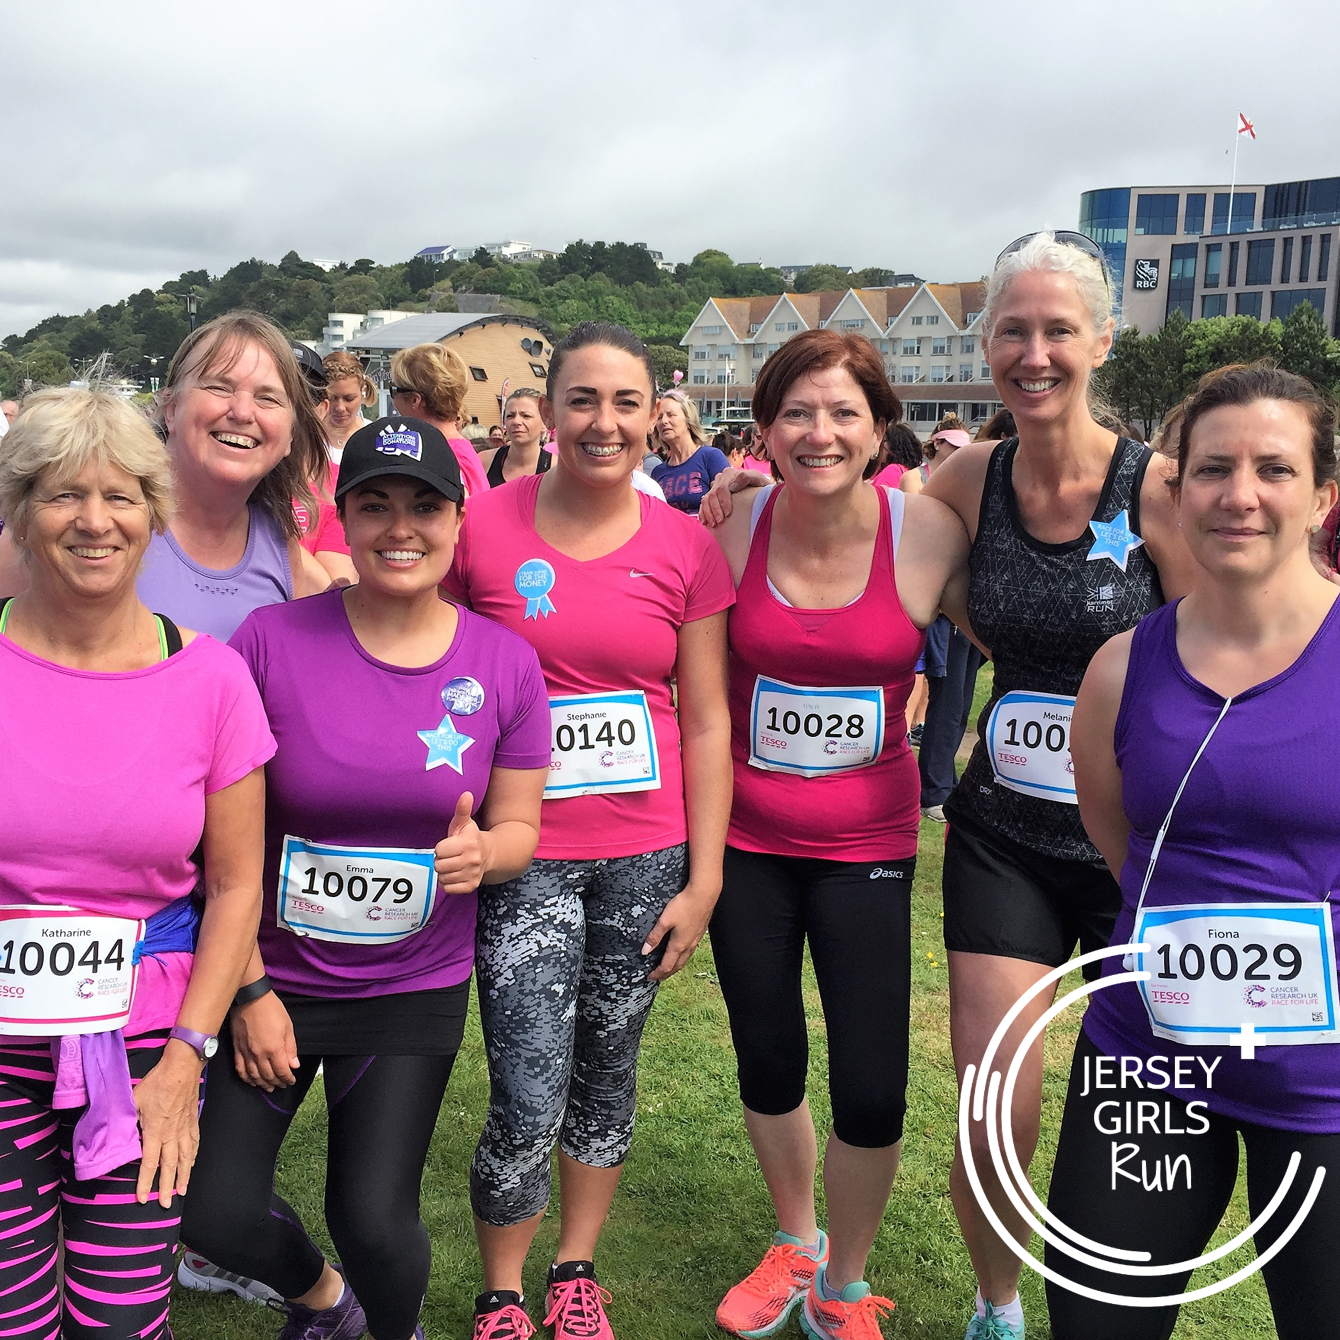 27 MAY 2017 - JERSEY GIRLS Race for Life - Hundreds of women walked, jogged and ran the Cancer Research UK Race for Life with the options of a 5k or a 10k route.  Lets beat it together.